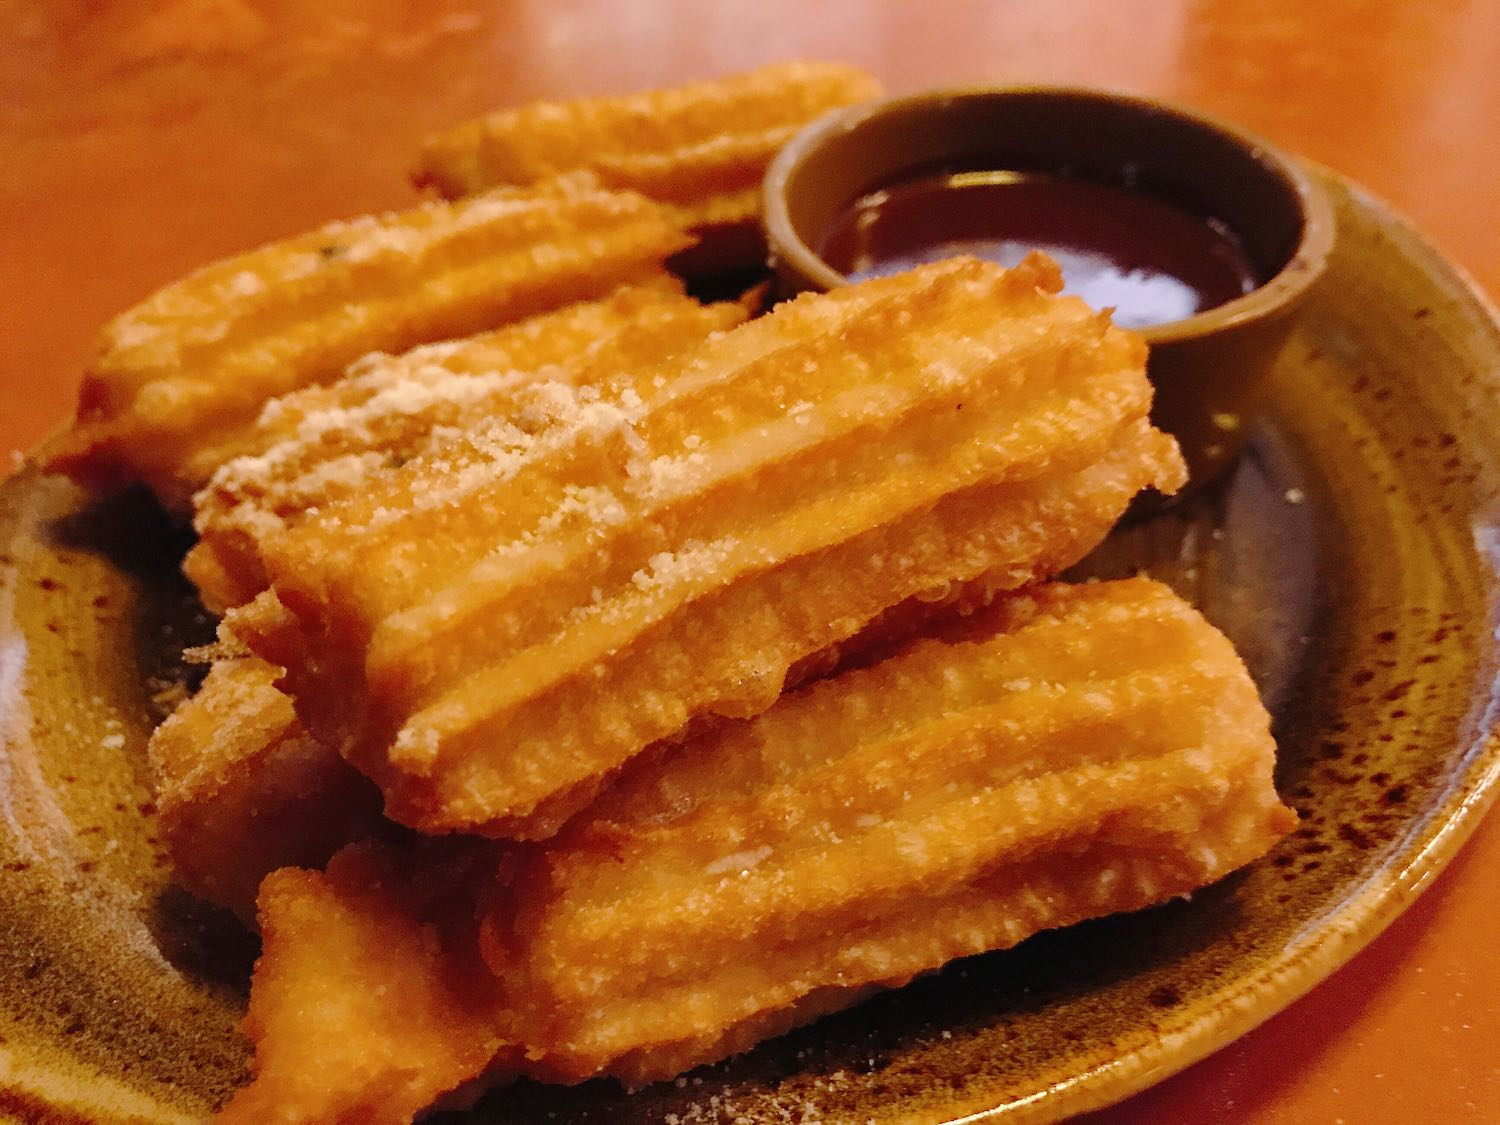 A plate of churros with a chocolate dipping sauce from Shakewell in Oakland.